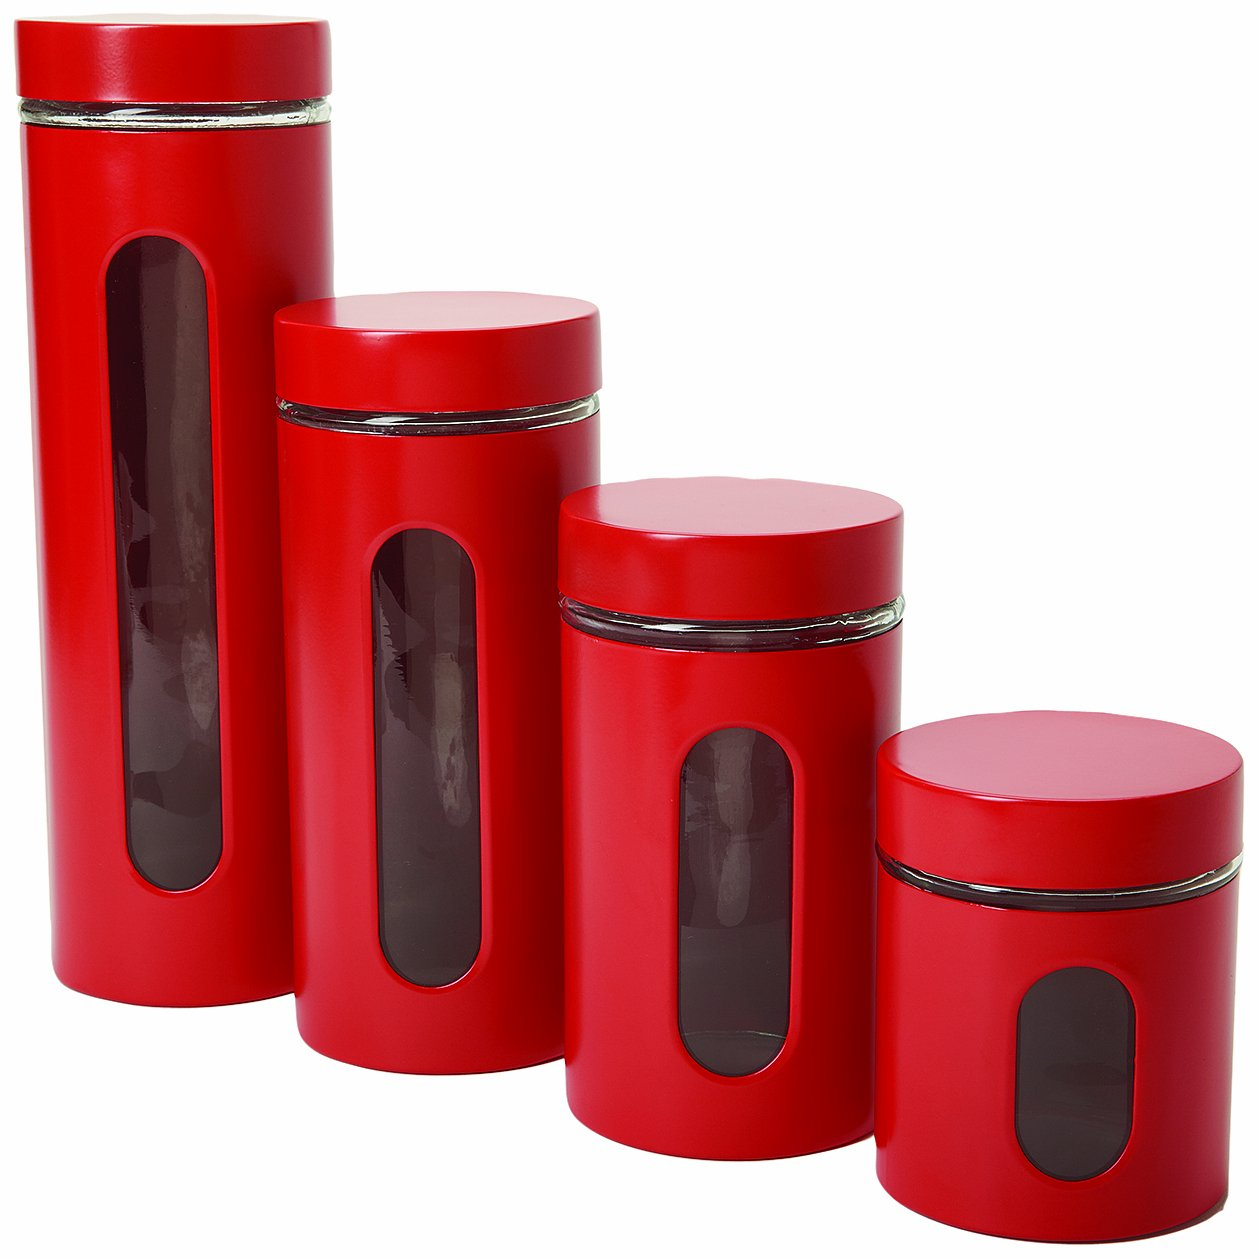 red kitchen canisters amazon com rh amazon com